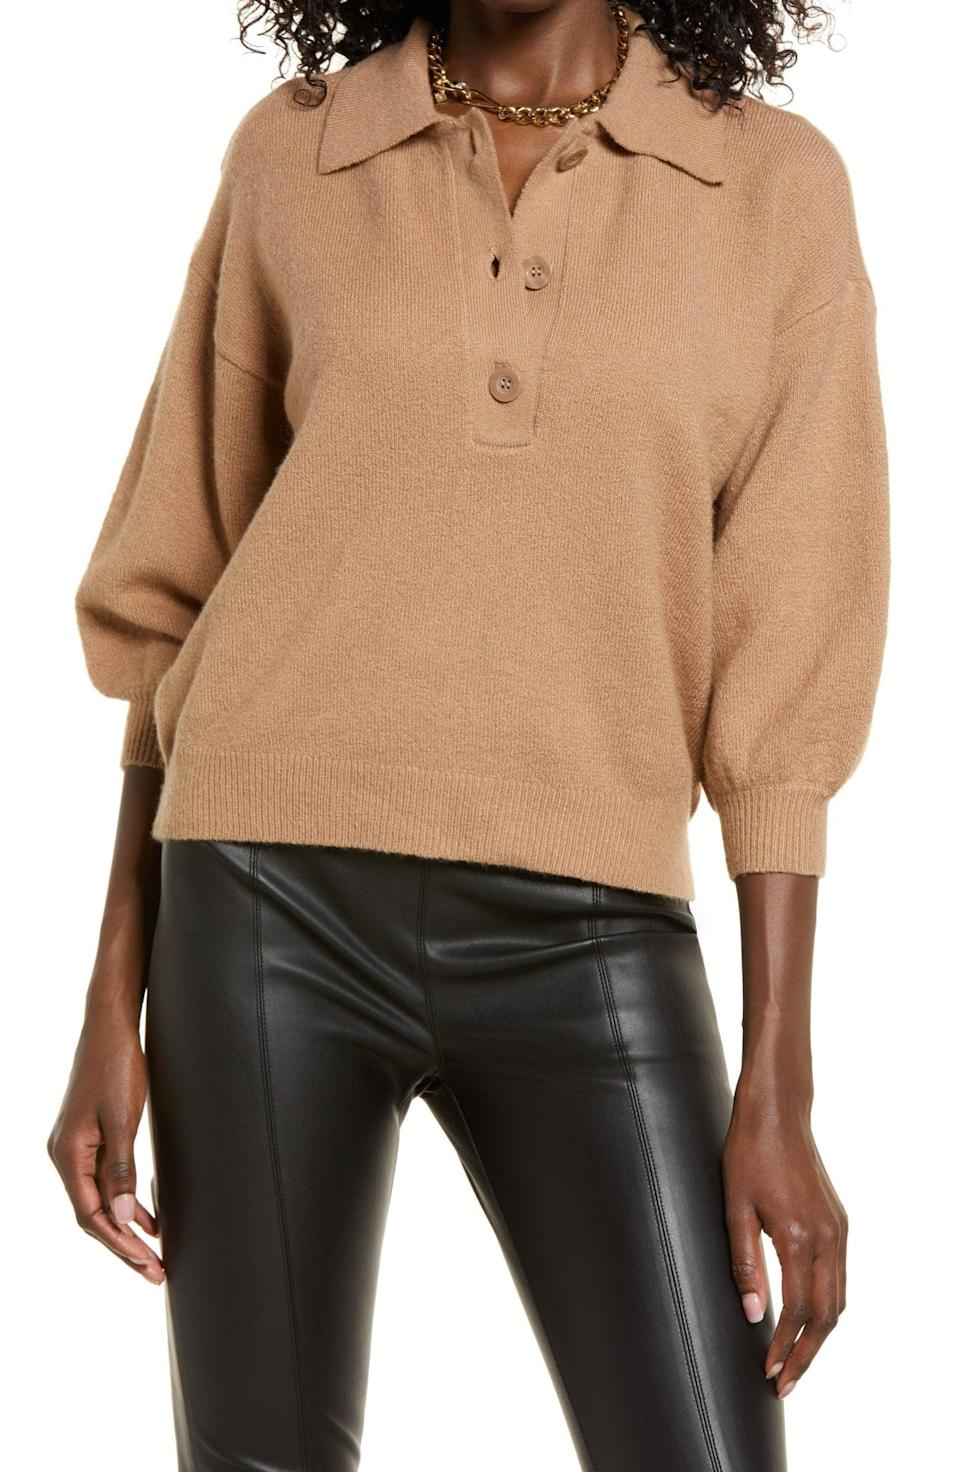 <p>This <span>Open Edit Polo Sweater</span> ($59) has universal appeal, making it a timeless fall staple. Cut from a cotton-blend knit fabric and designed with relaxed shoulders and billowy sleeves, it combines style and comfort effortlessly. </p>